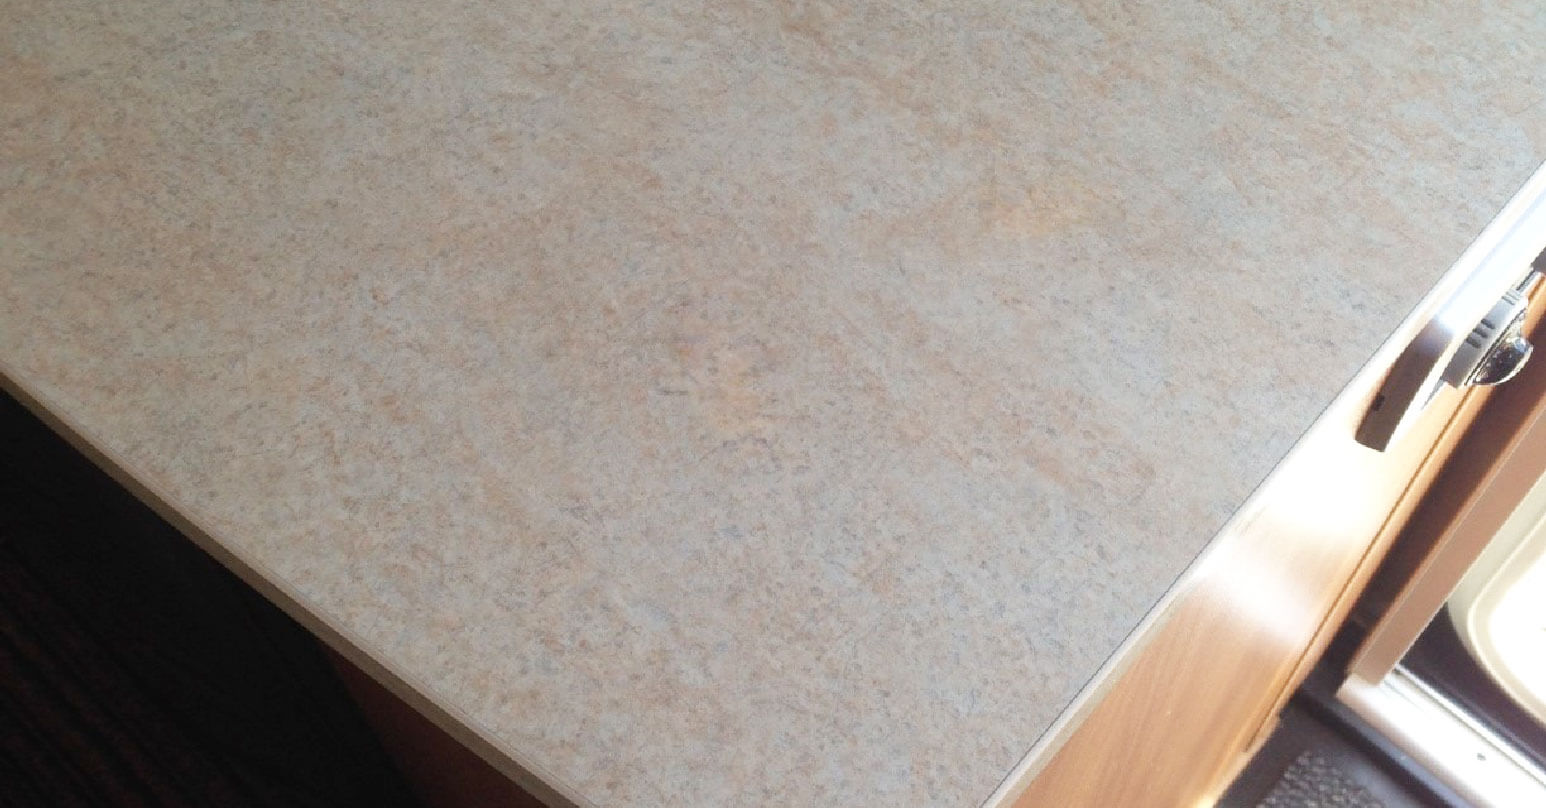 Repair to laminate table - furniture